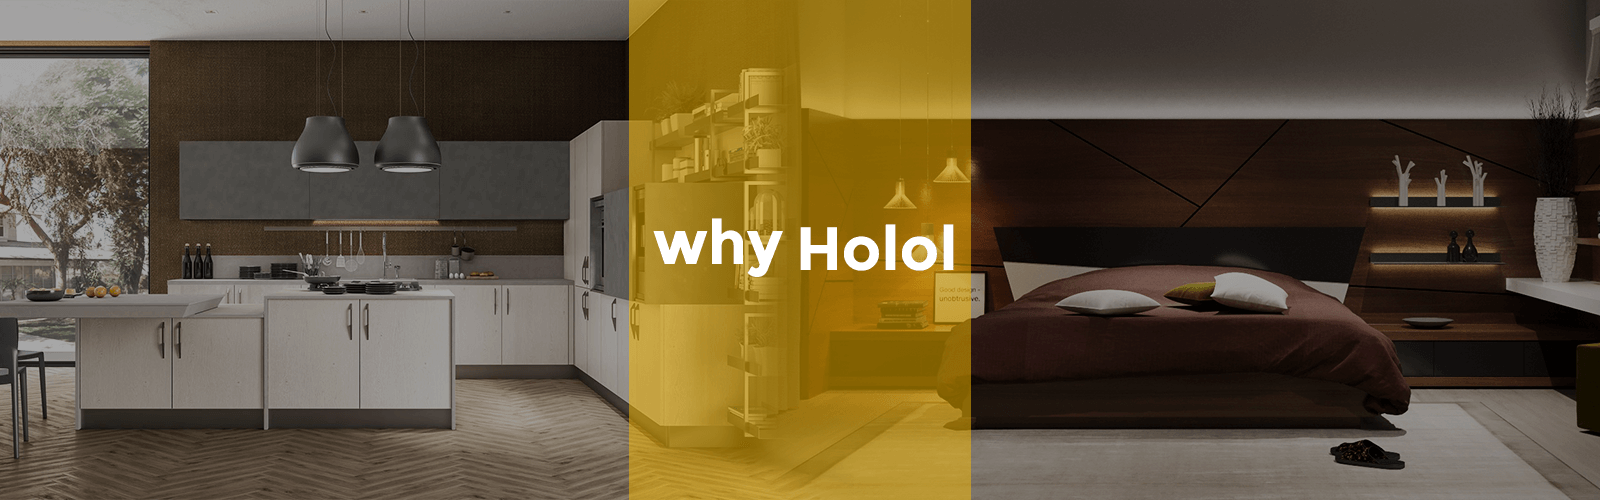 why holol -